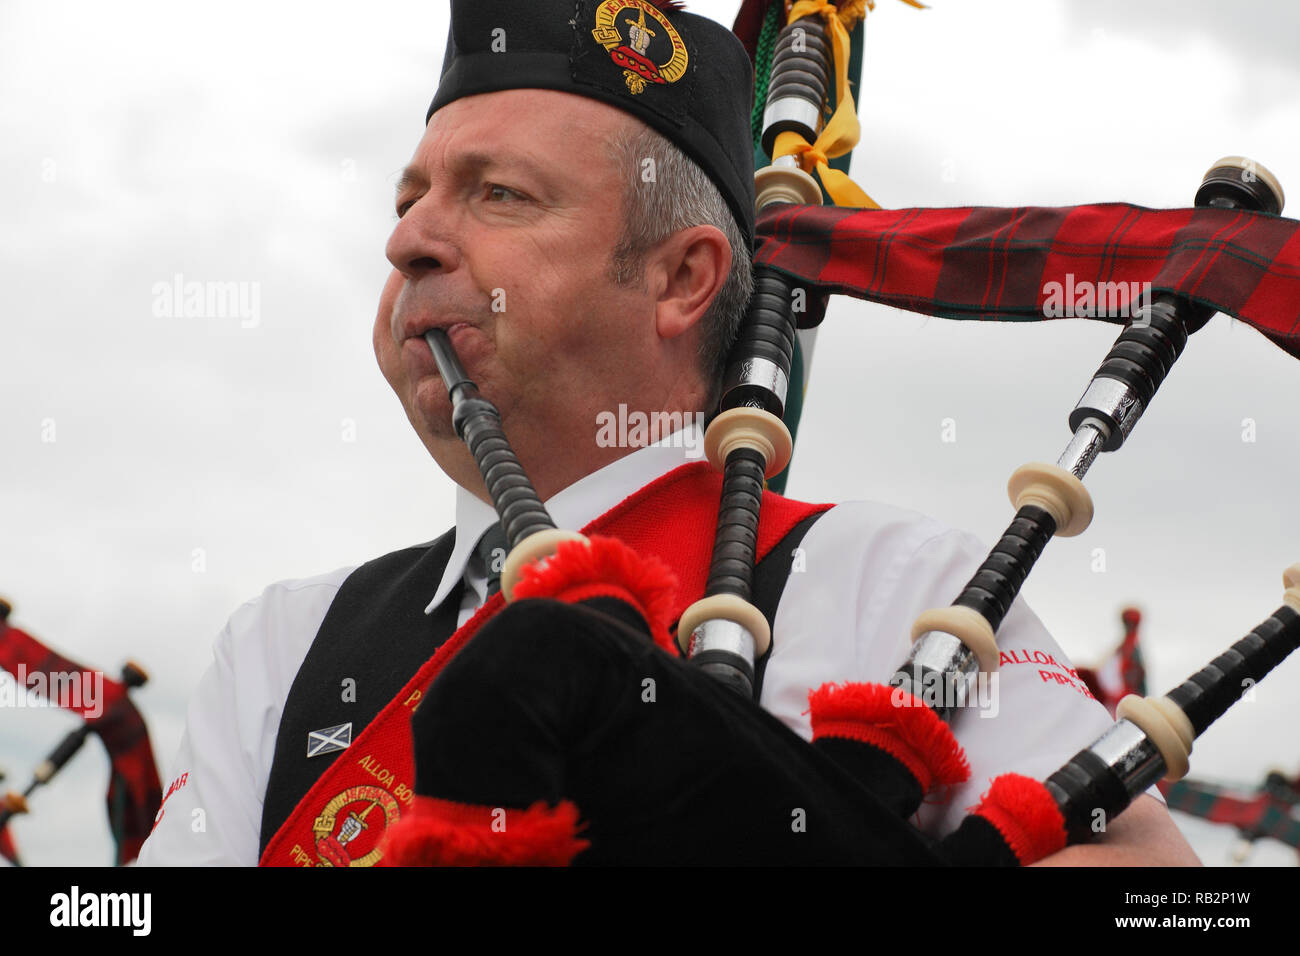 The Great Highland Bagpipe played at Highland games Stock Photo